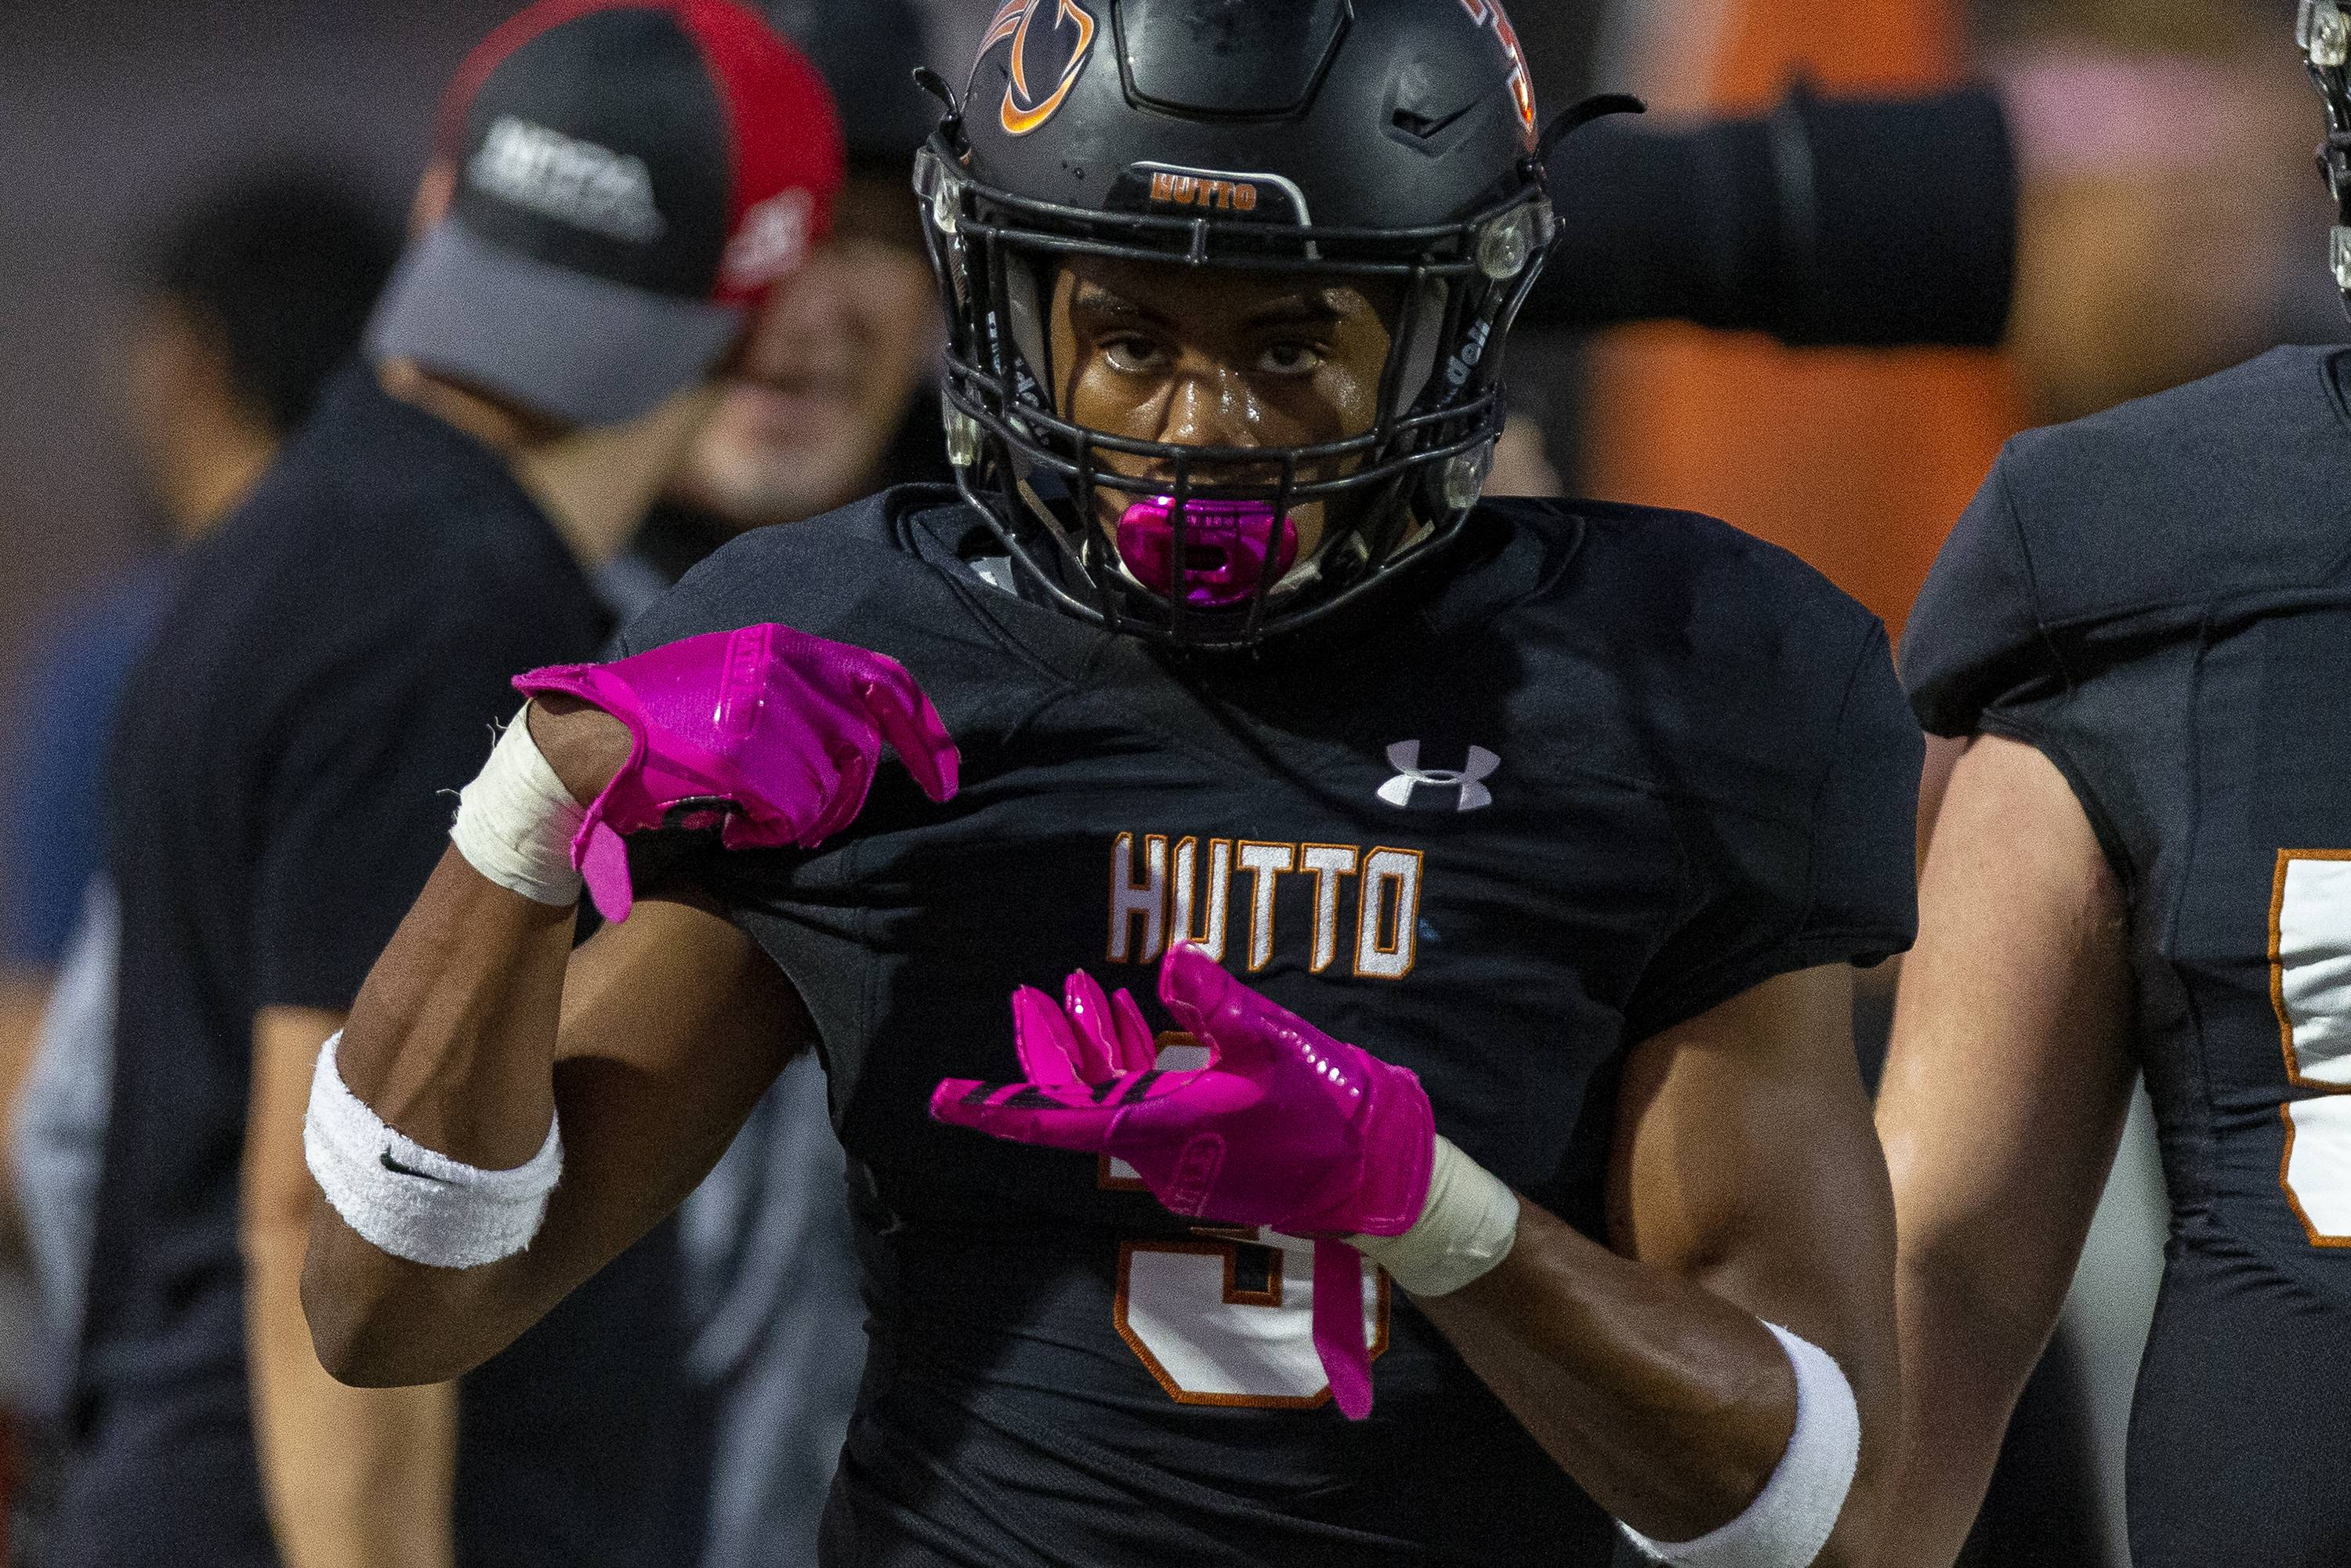 2020 Hutto athlete Dajon Harrison commits to Texas